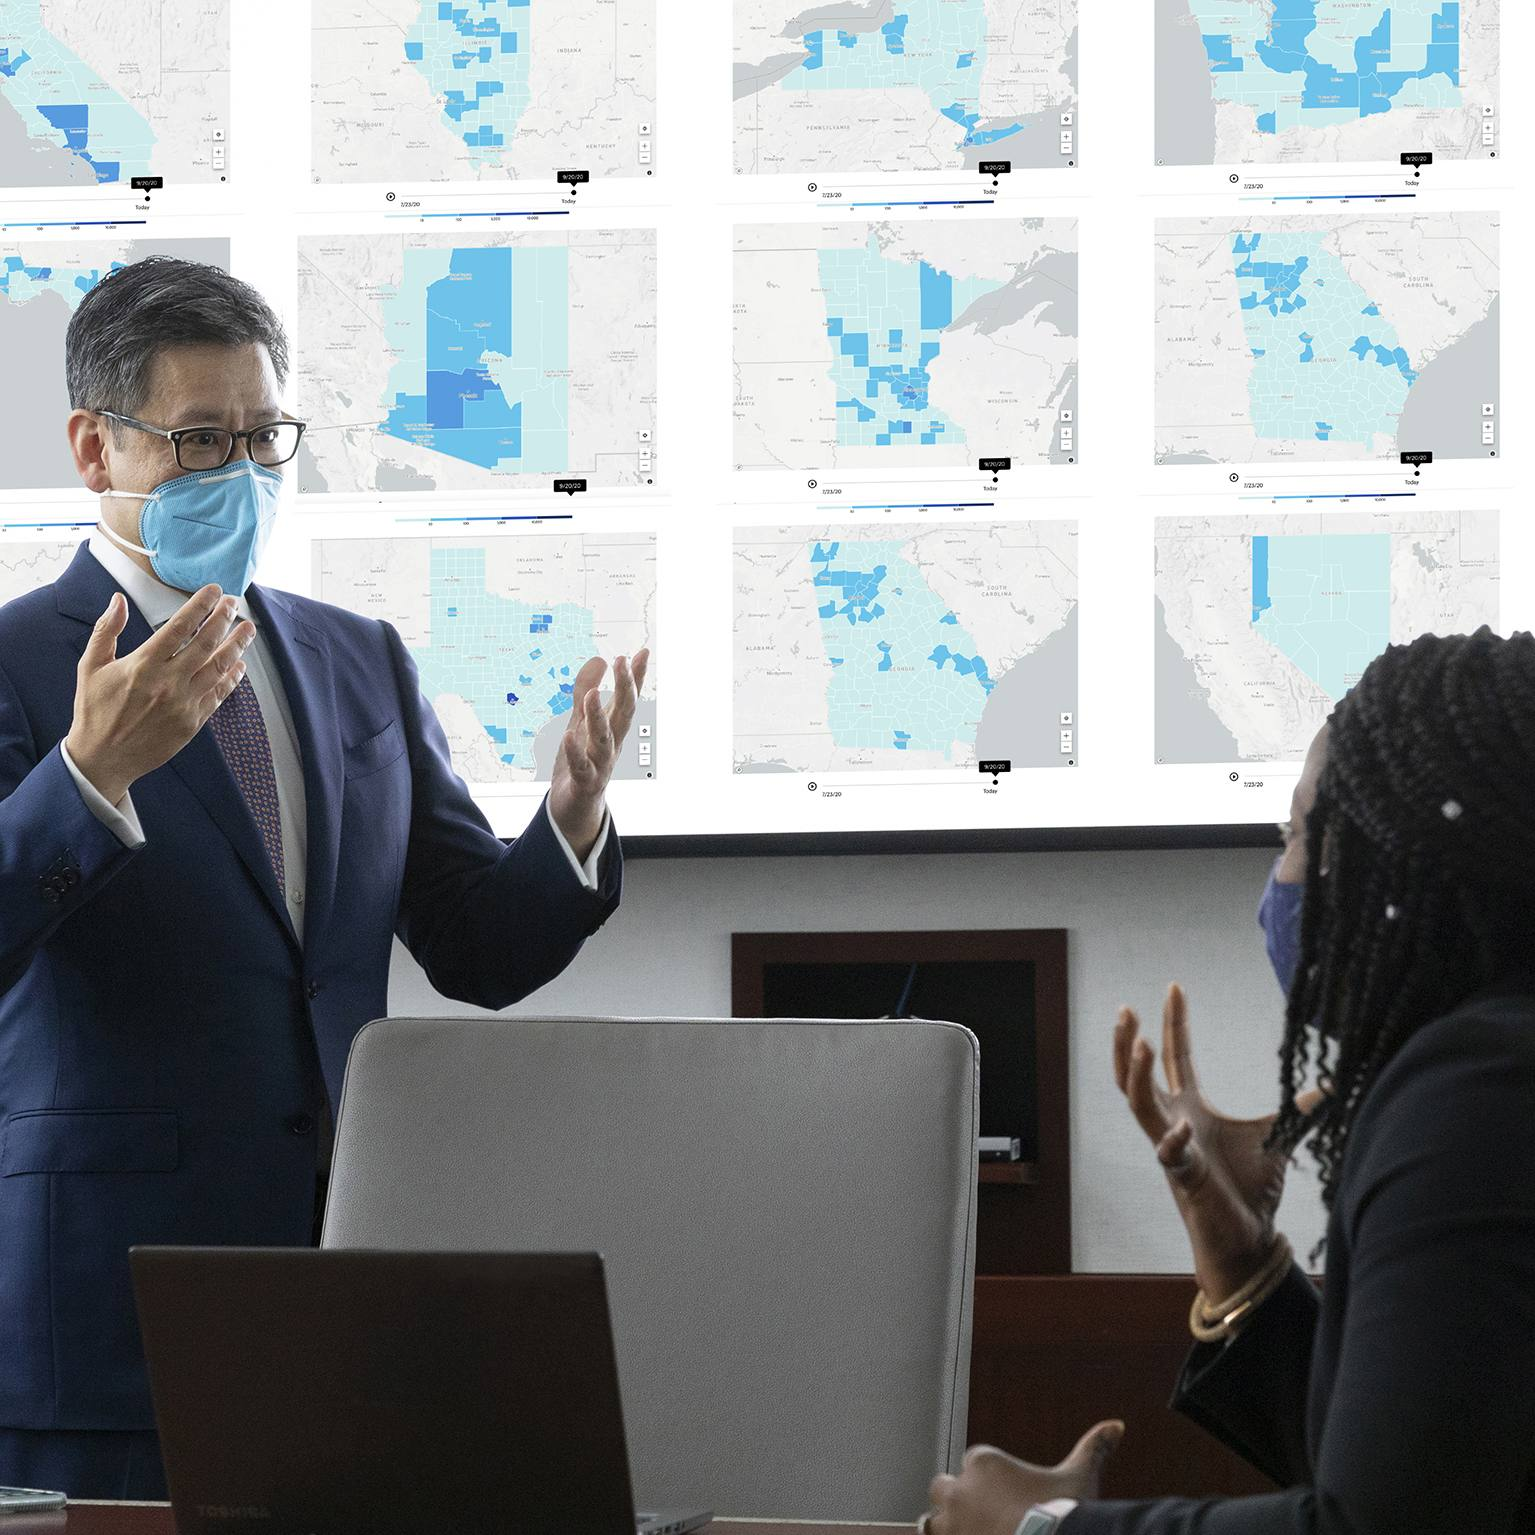 Dr. Ting with research team, wearing face masks, viewing and talking about the large wall monitors displaying maps of the states on the coronavirus tracking tool